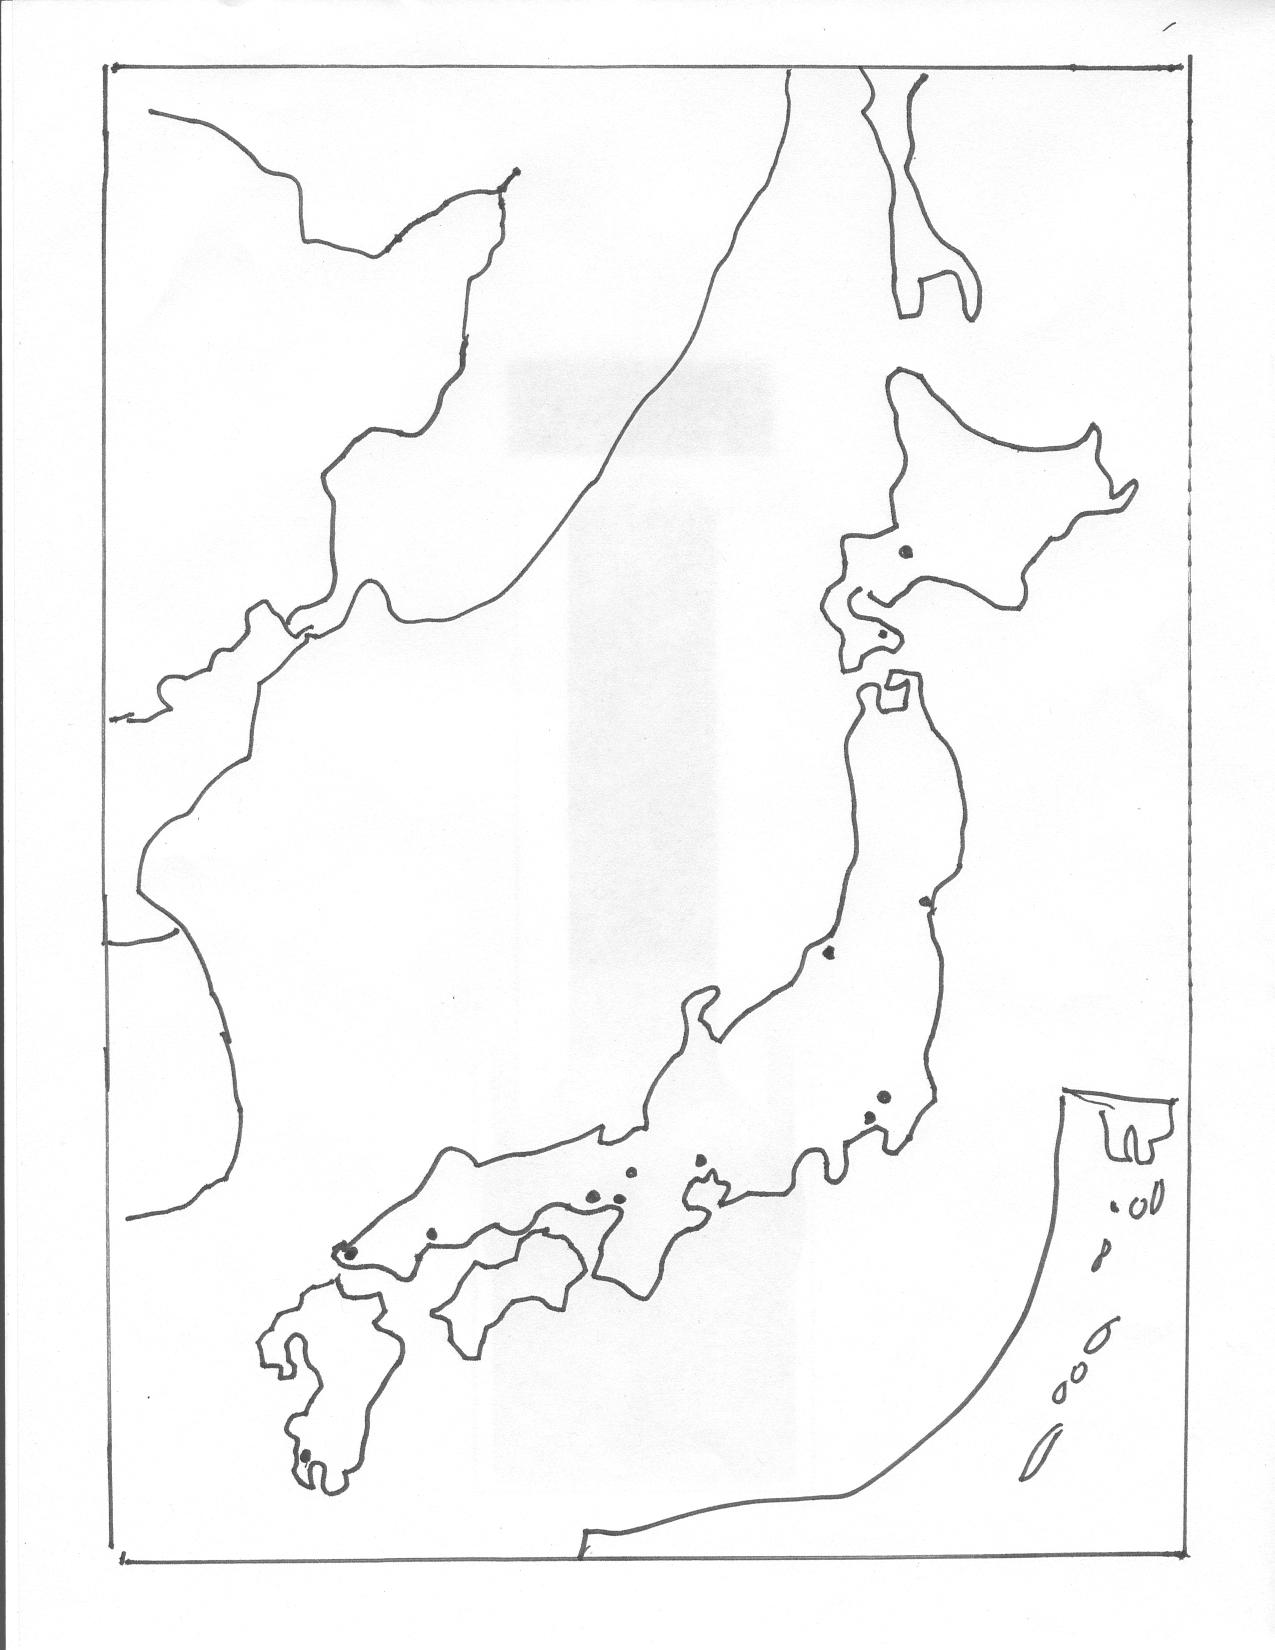 Japan Map Drawing at GetDrawings.com | Free for personal use Japan ...